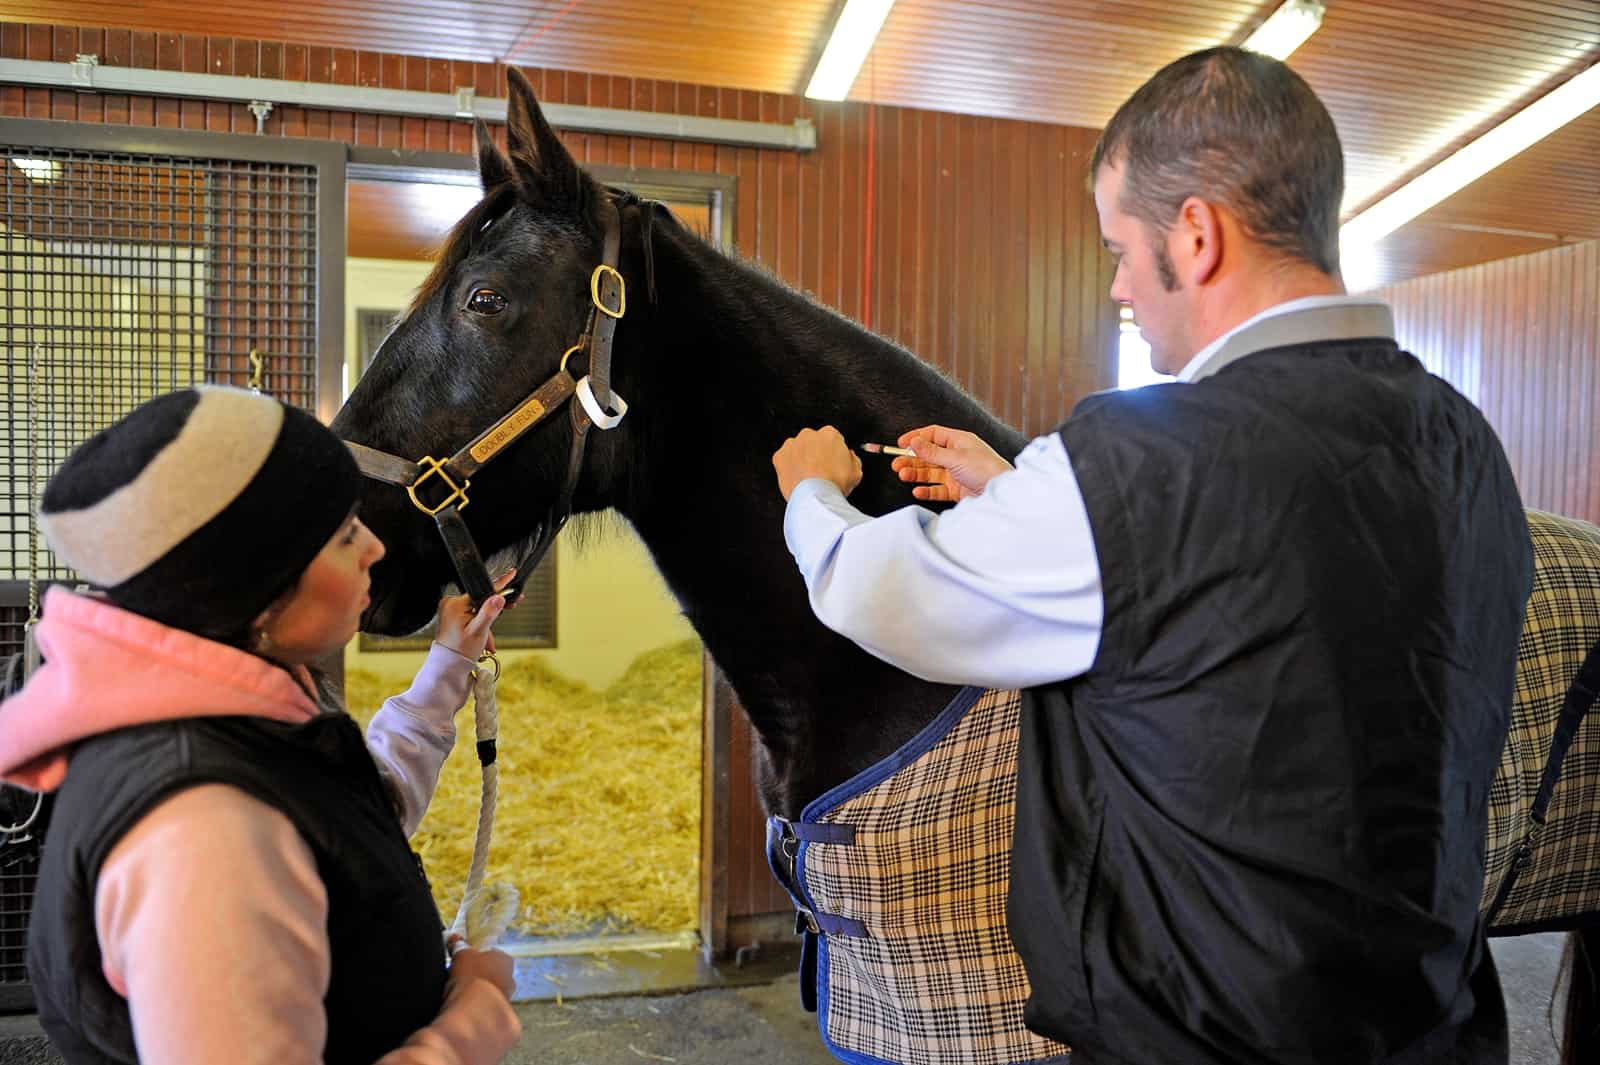 Injection Objection Adverse Vaccine Reactions The Horse